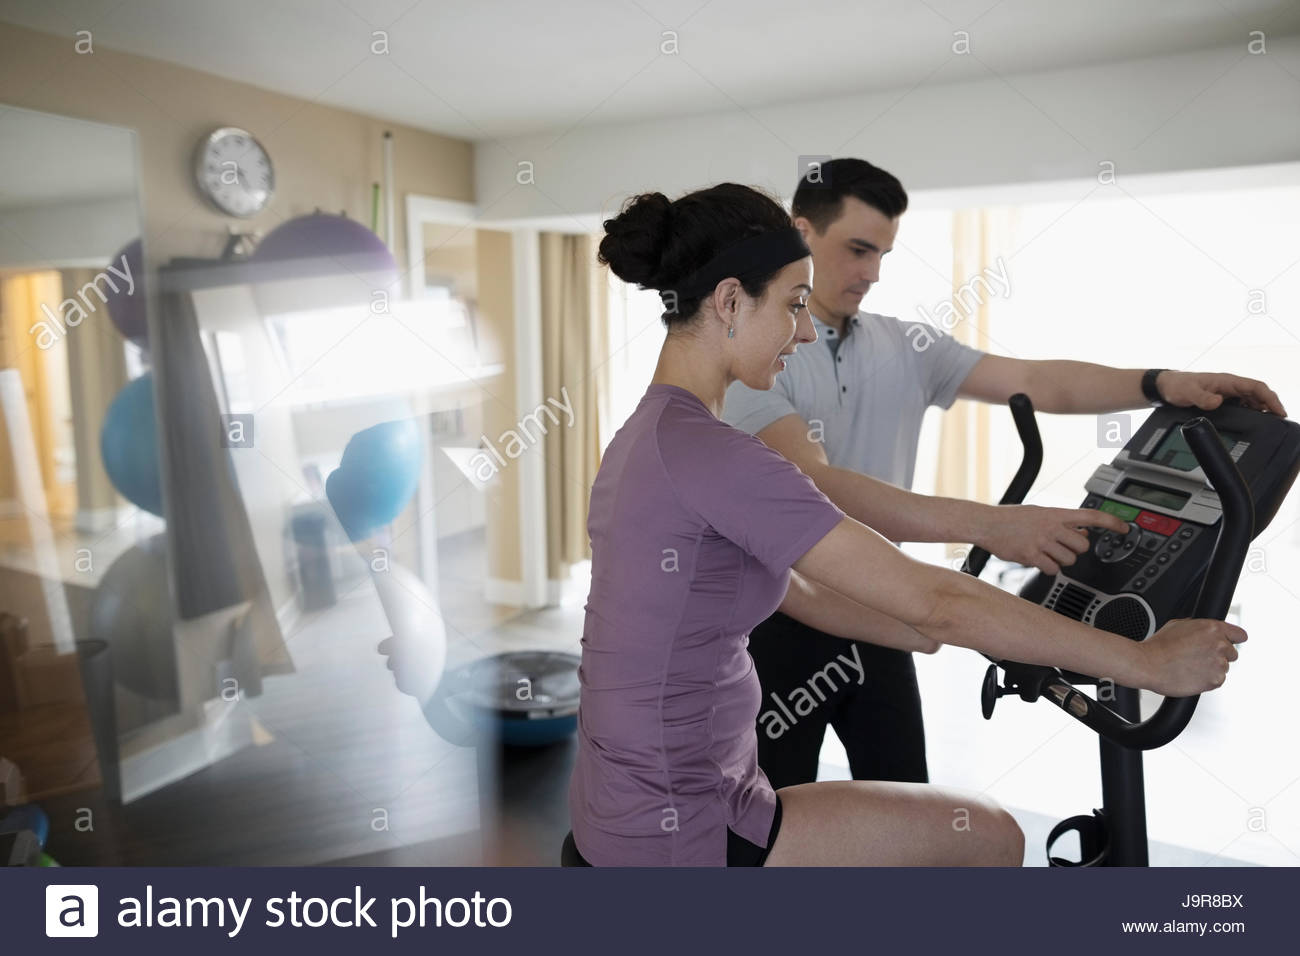 Male physiotherapist guiding female client exercising on exercise bicycle in clinic gym - Stock Image